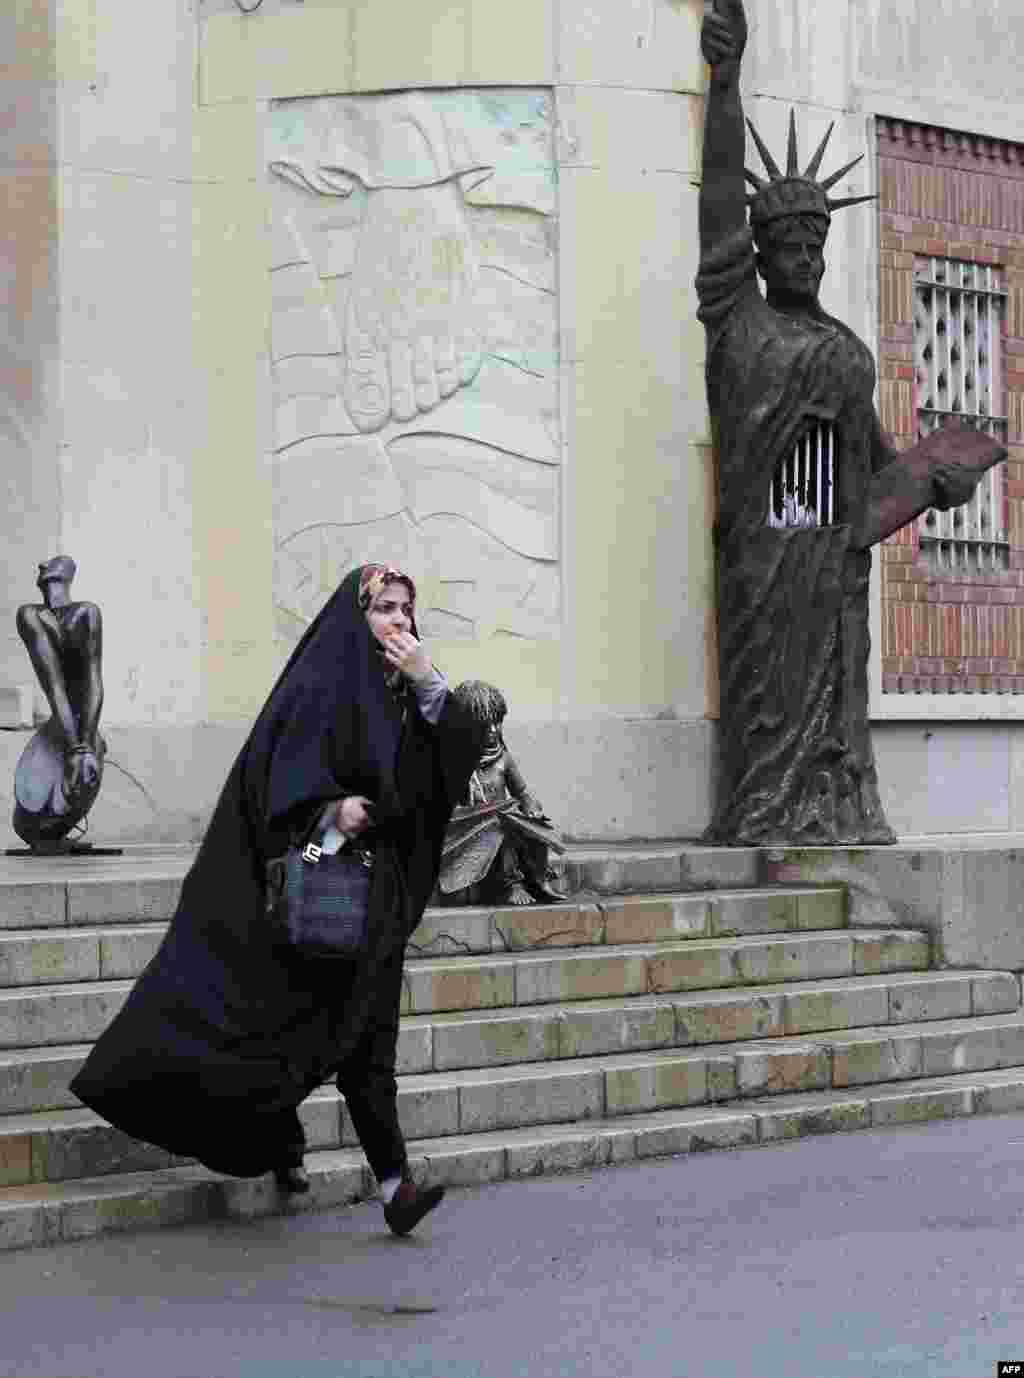 A woman walks past a mock Statue of Liberty decorated with prison bars outside the main building of the former U.S. Embassy in Tehran.